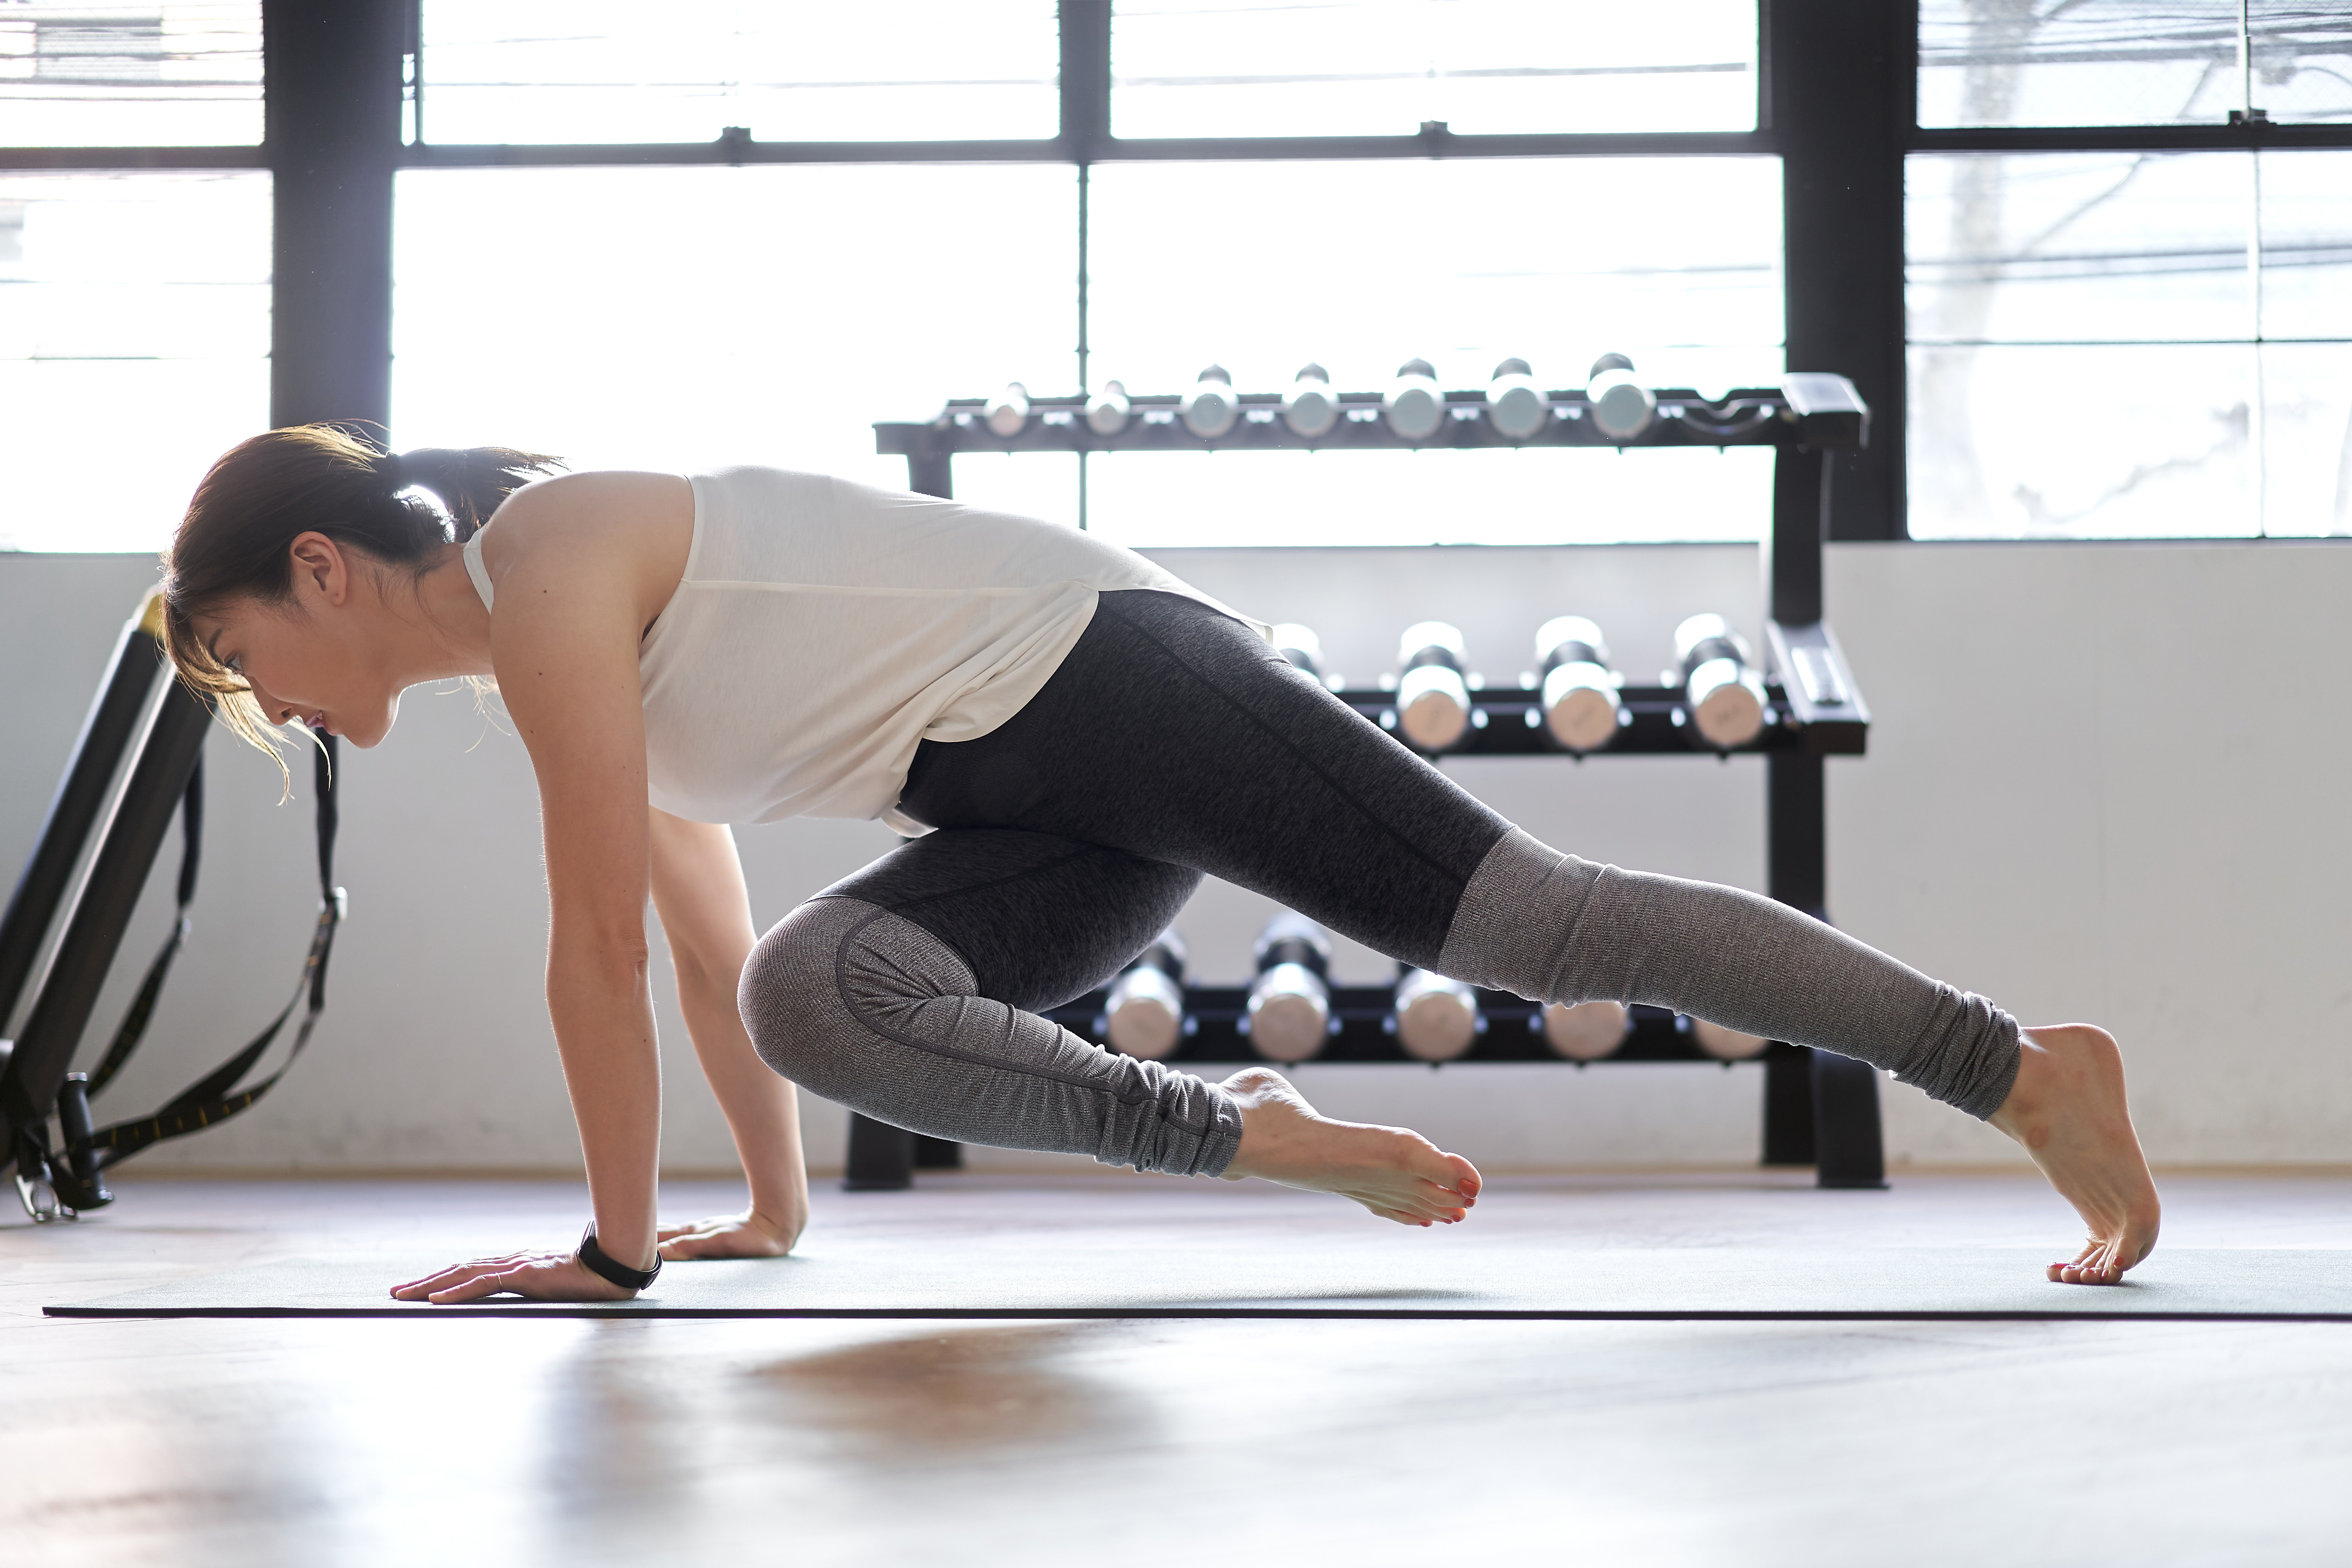 Burn calories and support your health goals with this at-home HiiT workout, designed by a certified trainer.  Kick start your he